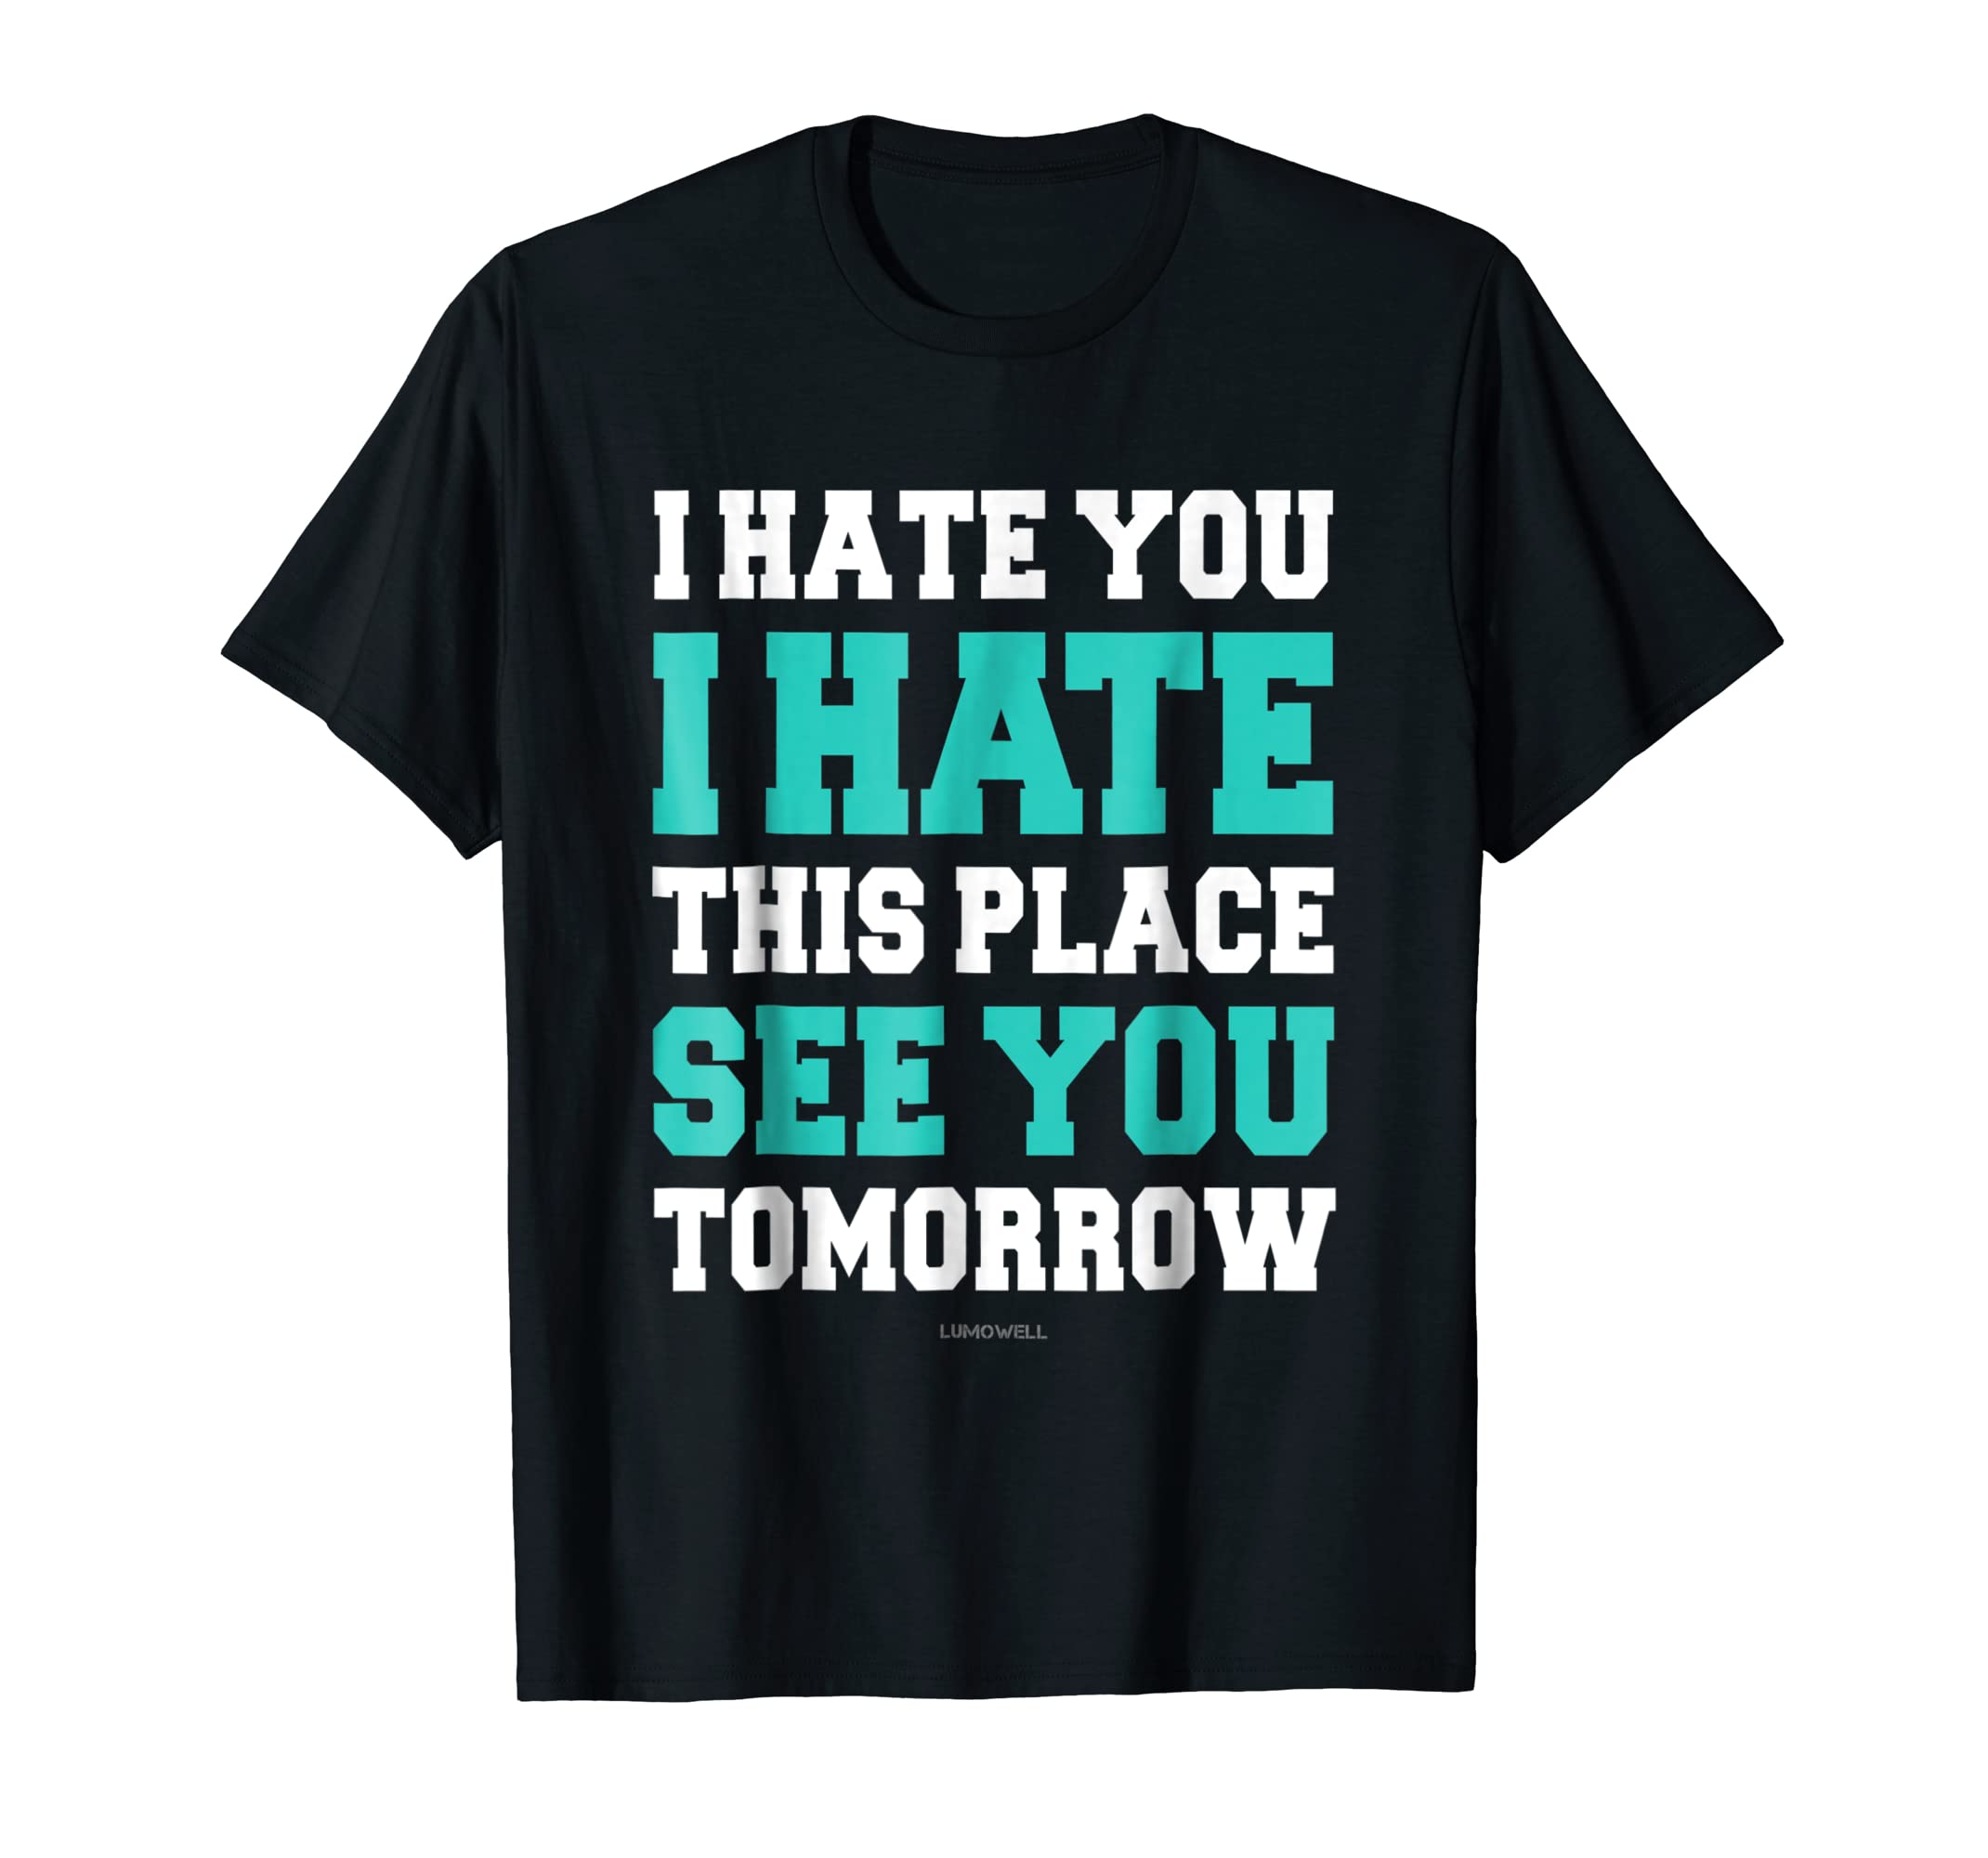 f5d61f26744a8f Amazon.com  Funny Gym TShirts  I Hate You This Place See You Tomorrow   Clothing